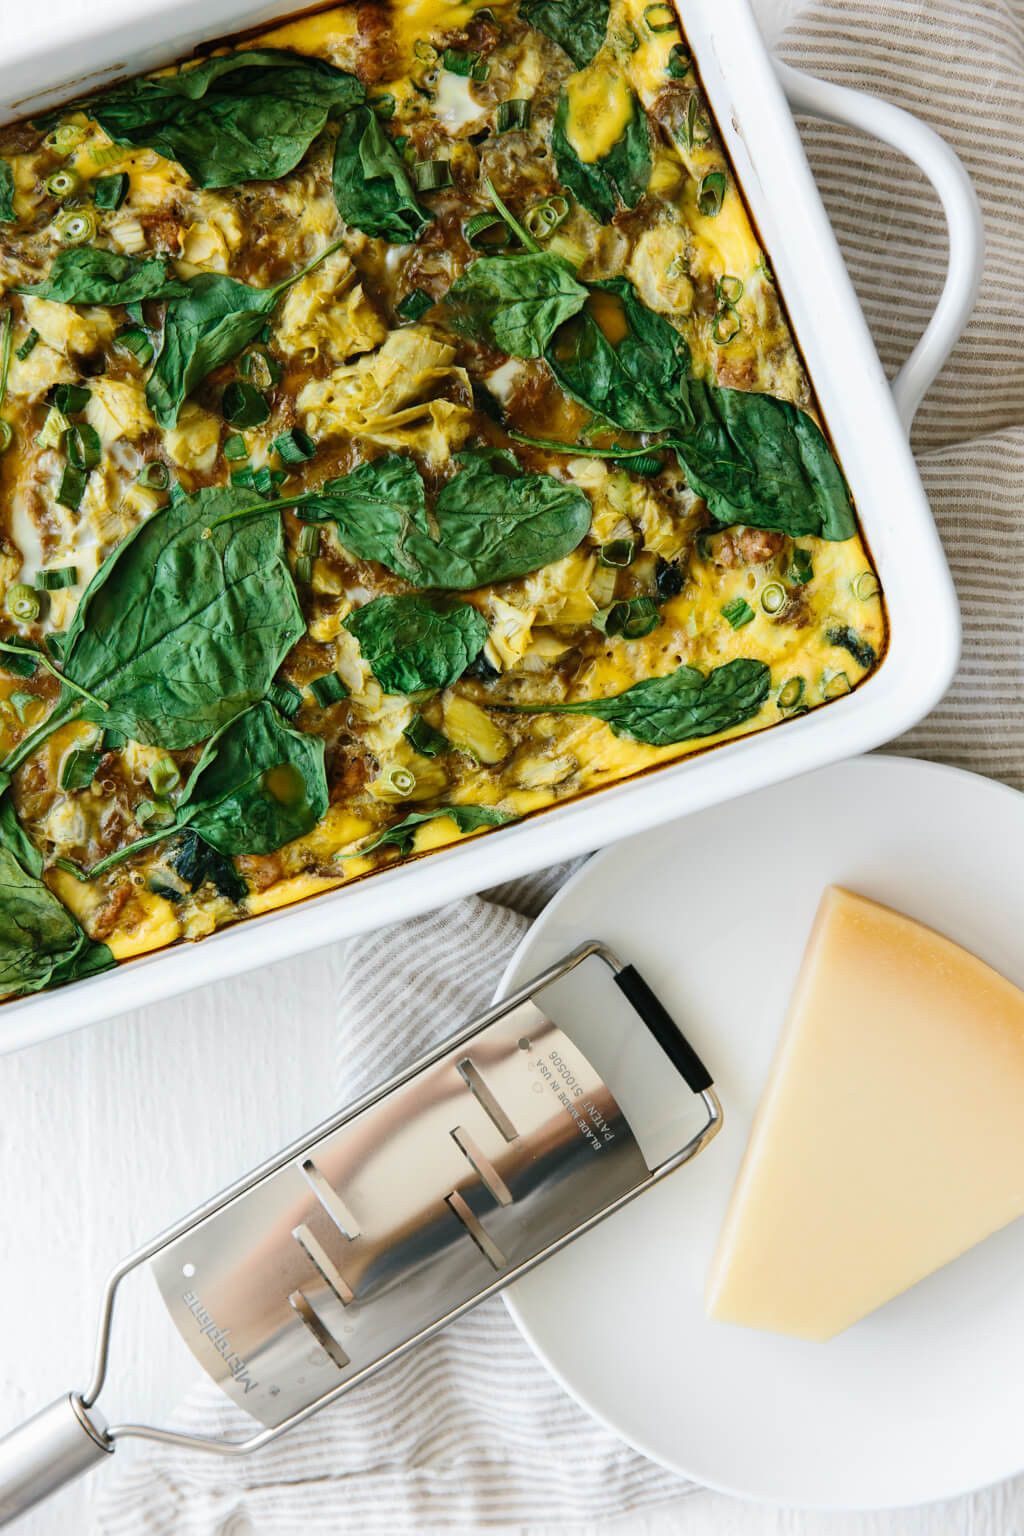 Healthy Breakfast Casserole With Spinach  Healthy Breakfast Casserole gluten free paleo